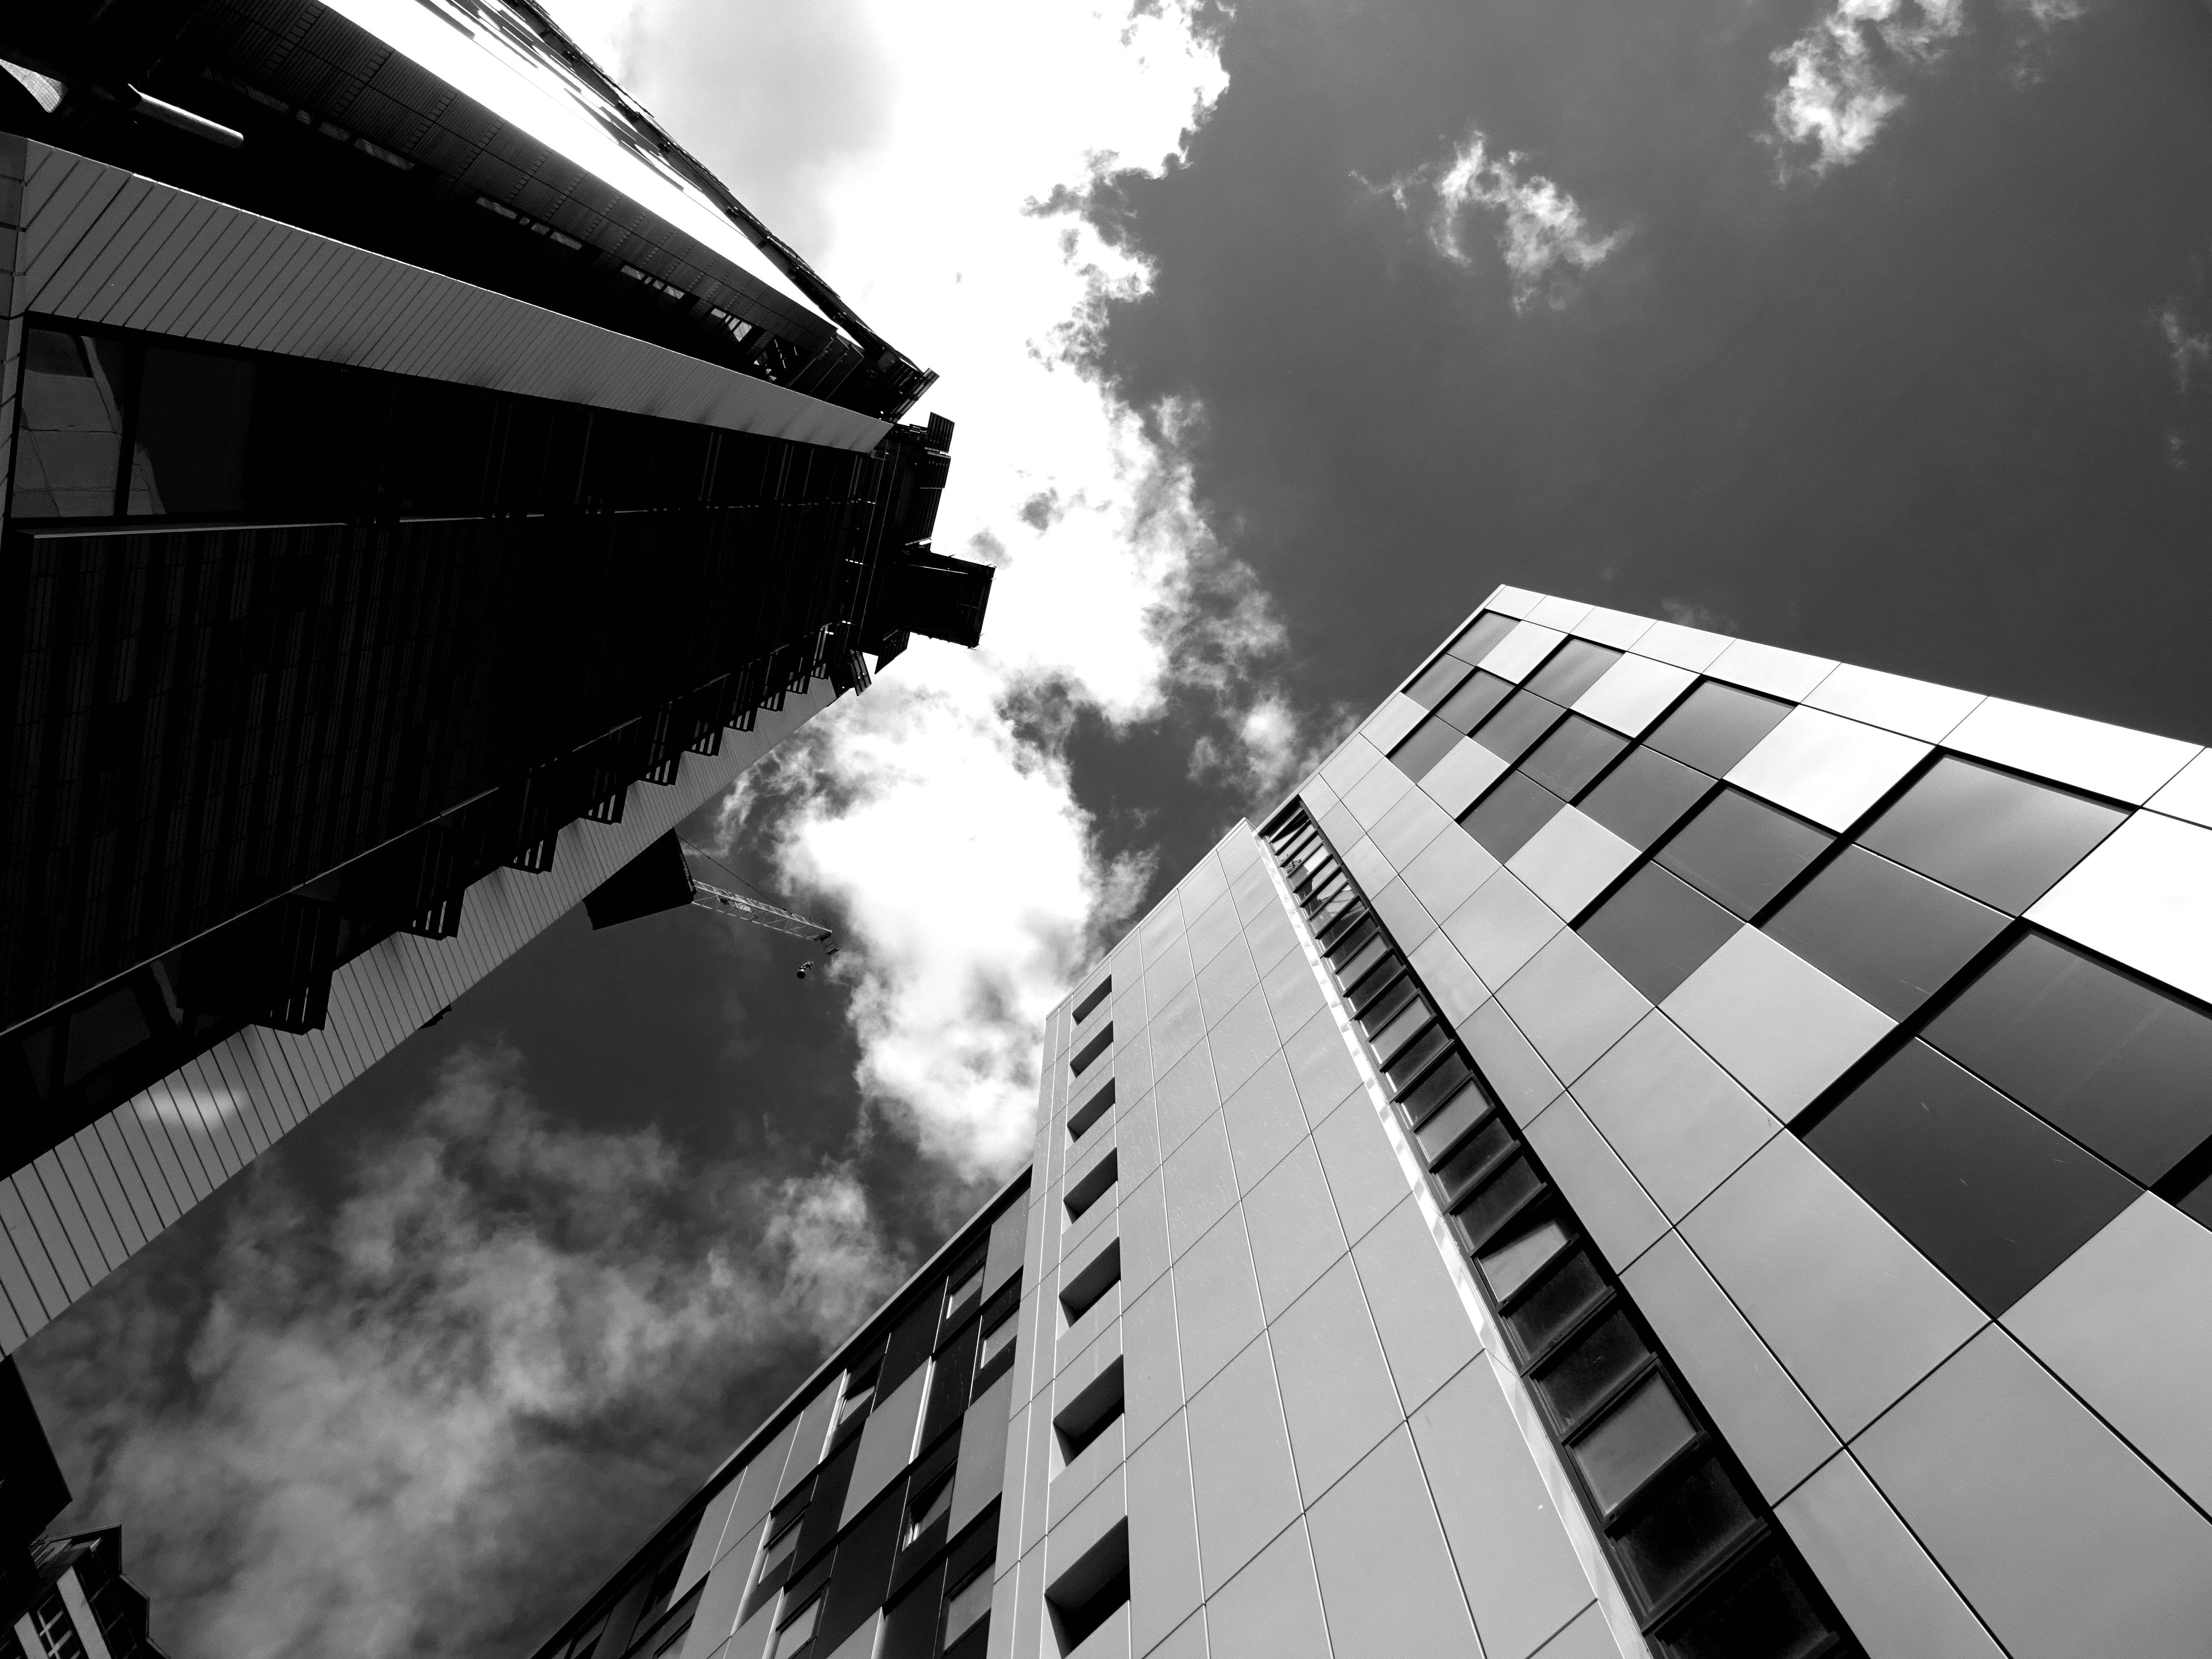 architecture, black and white, buildings